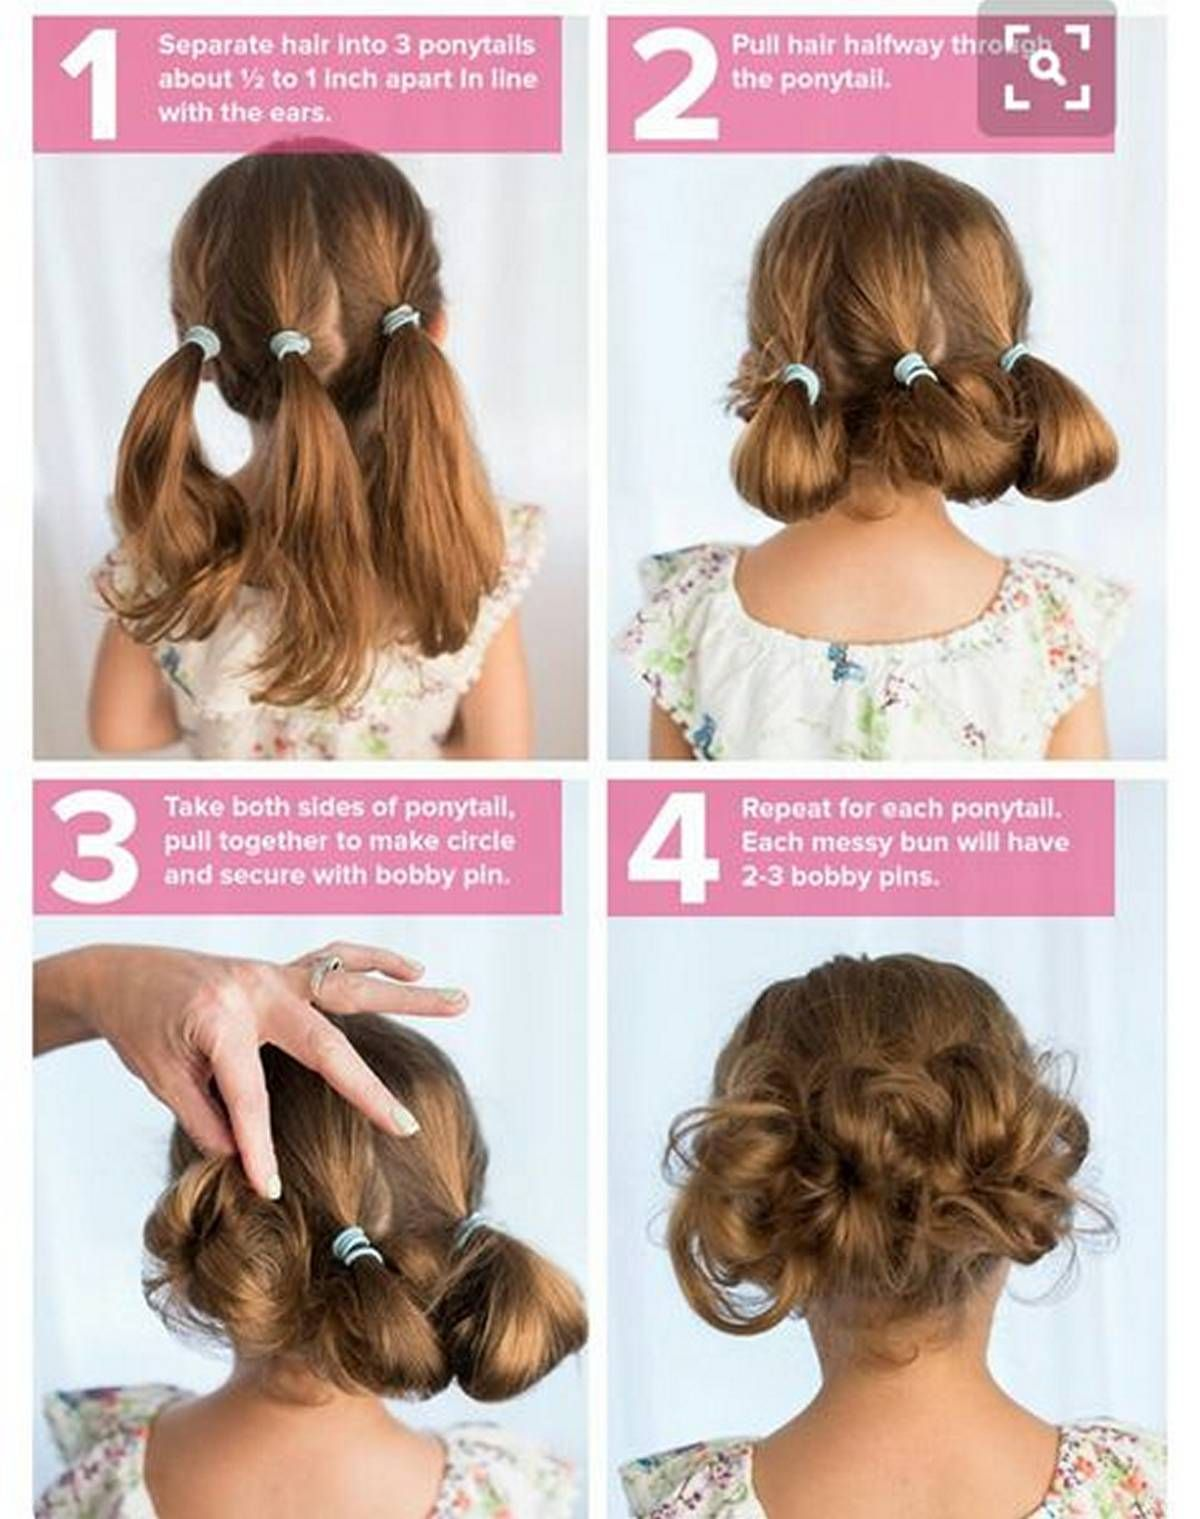 10 Hairstyles DIY And Tutorial For All Hair Lengths • DressFitMe